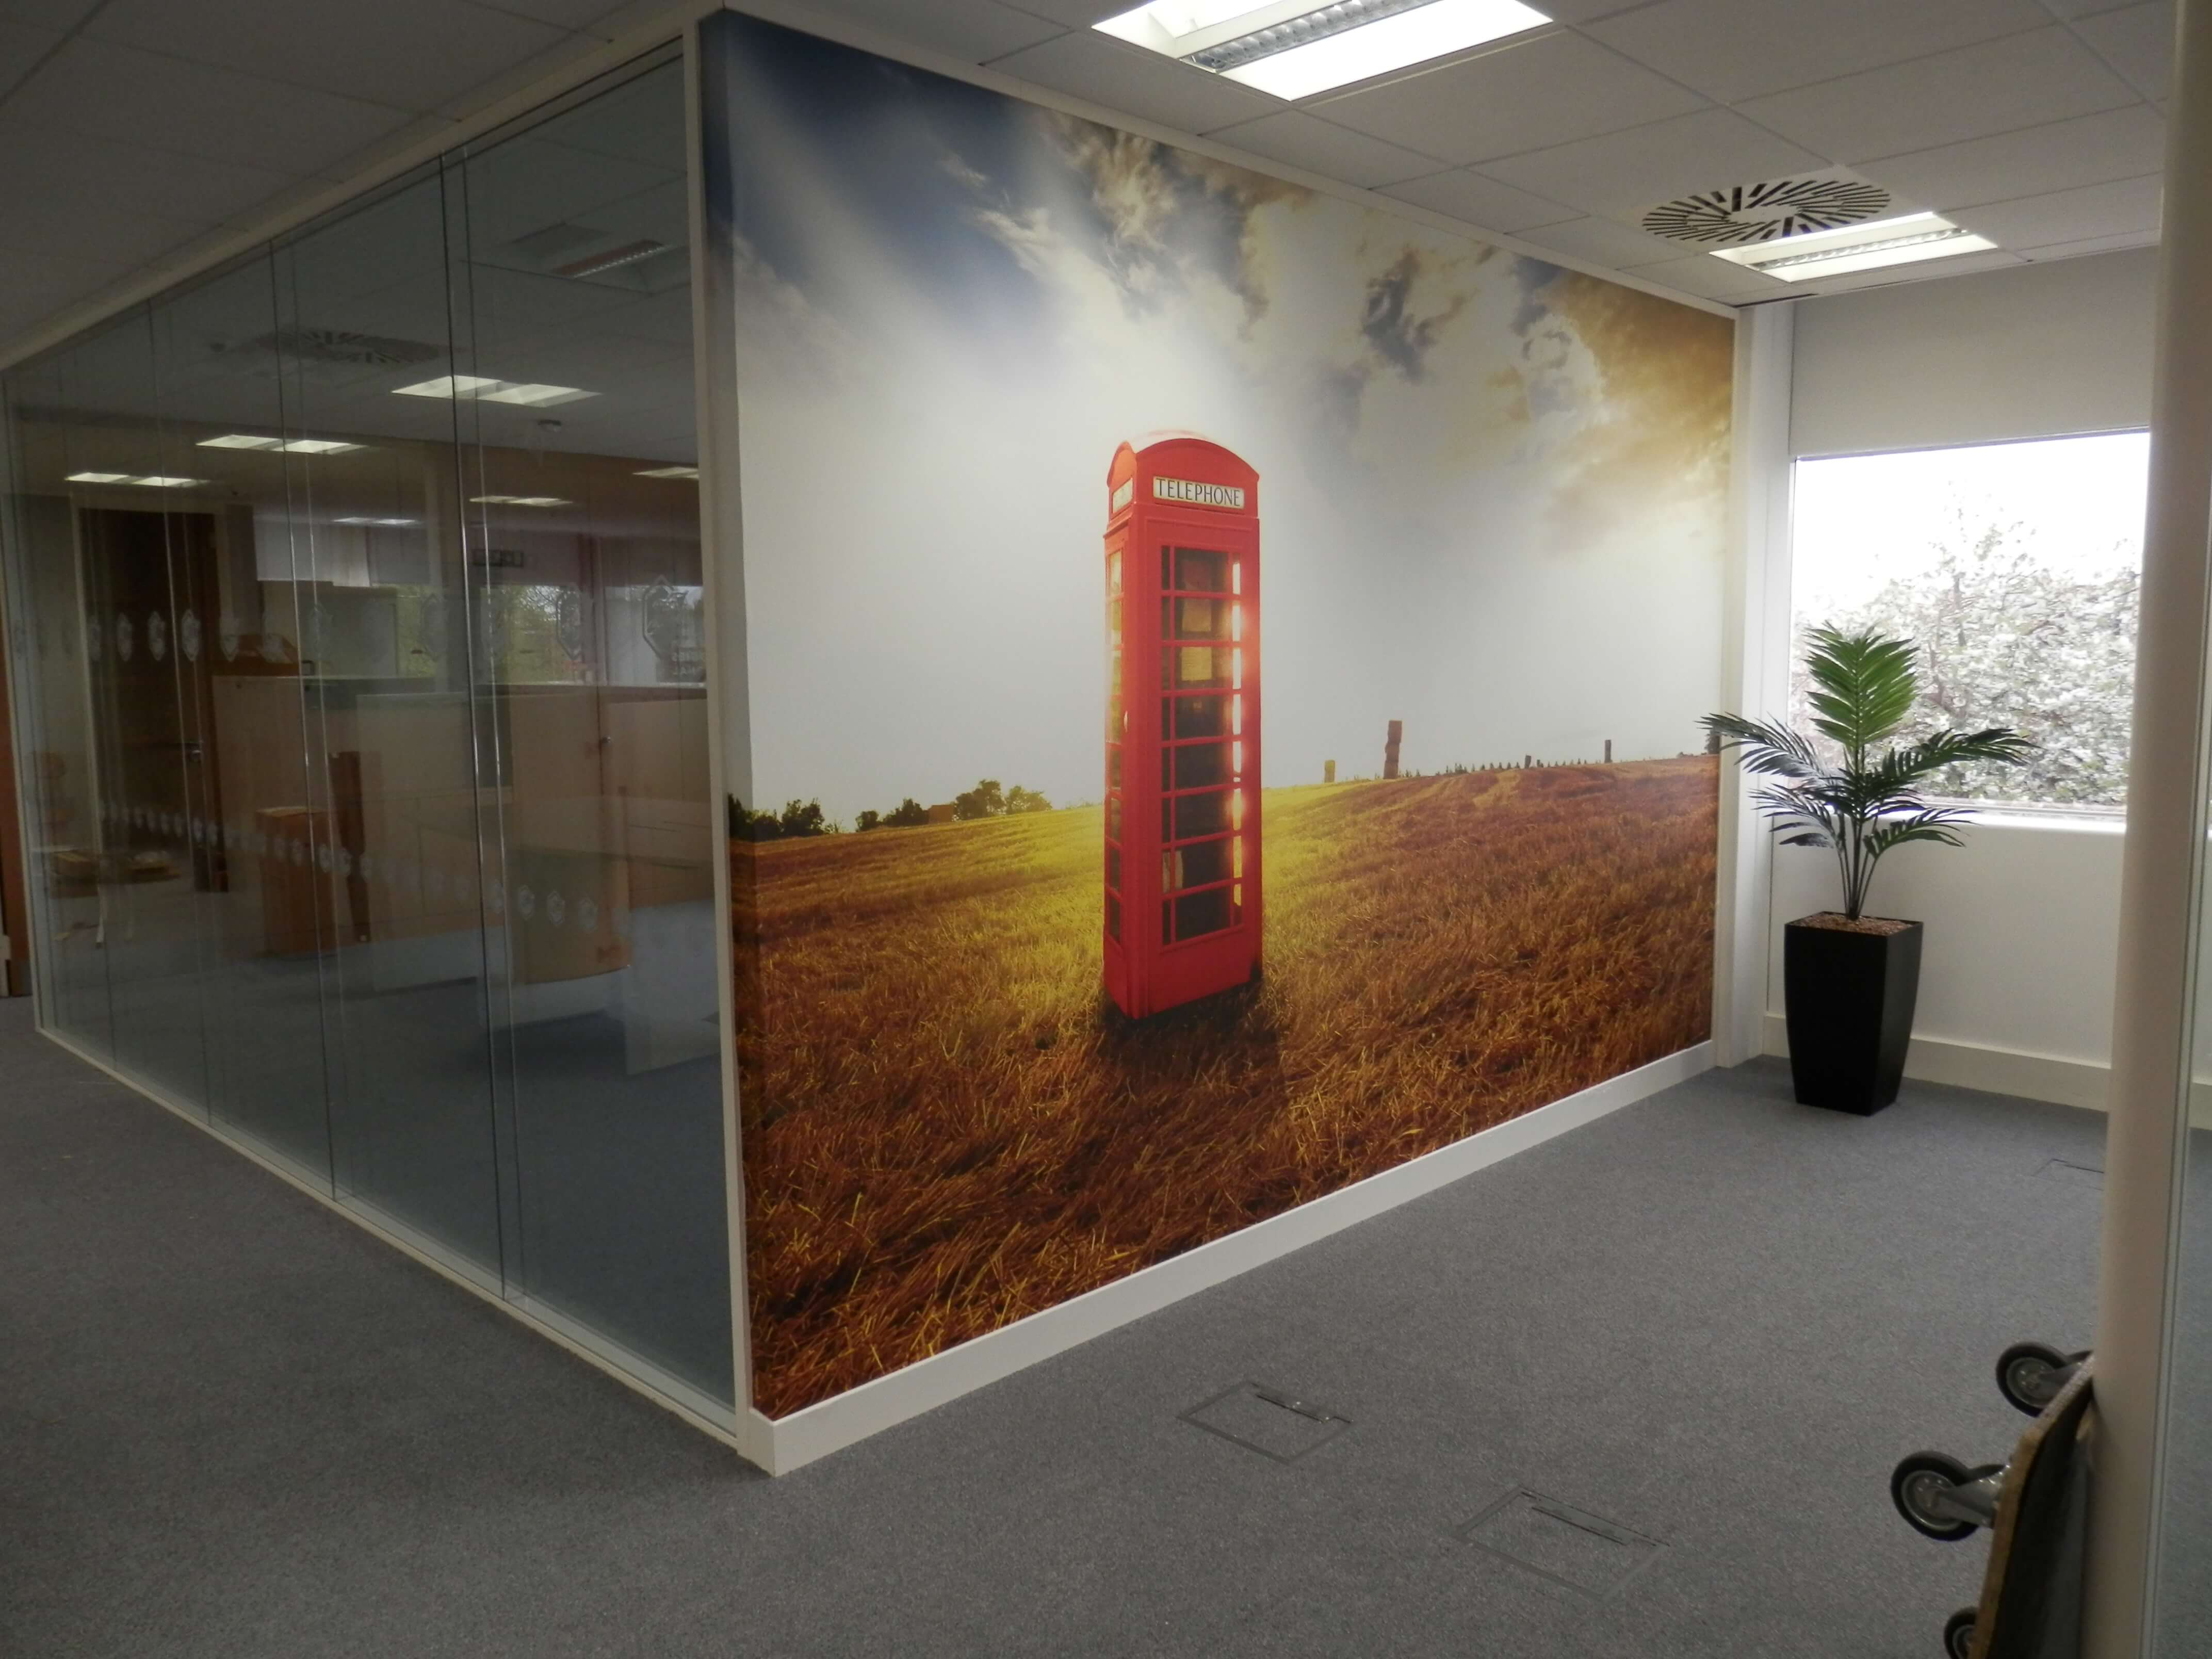 Feature wall digital image printed and installed. Looks good!